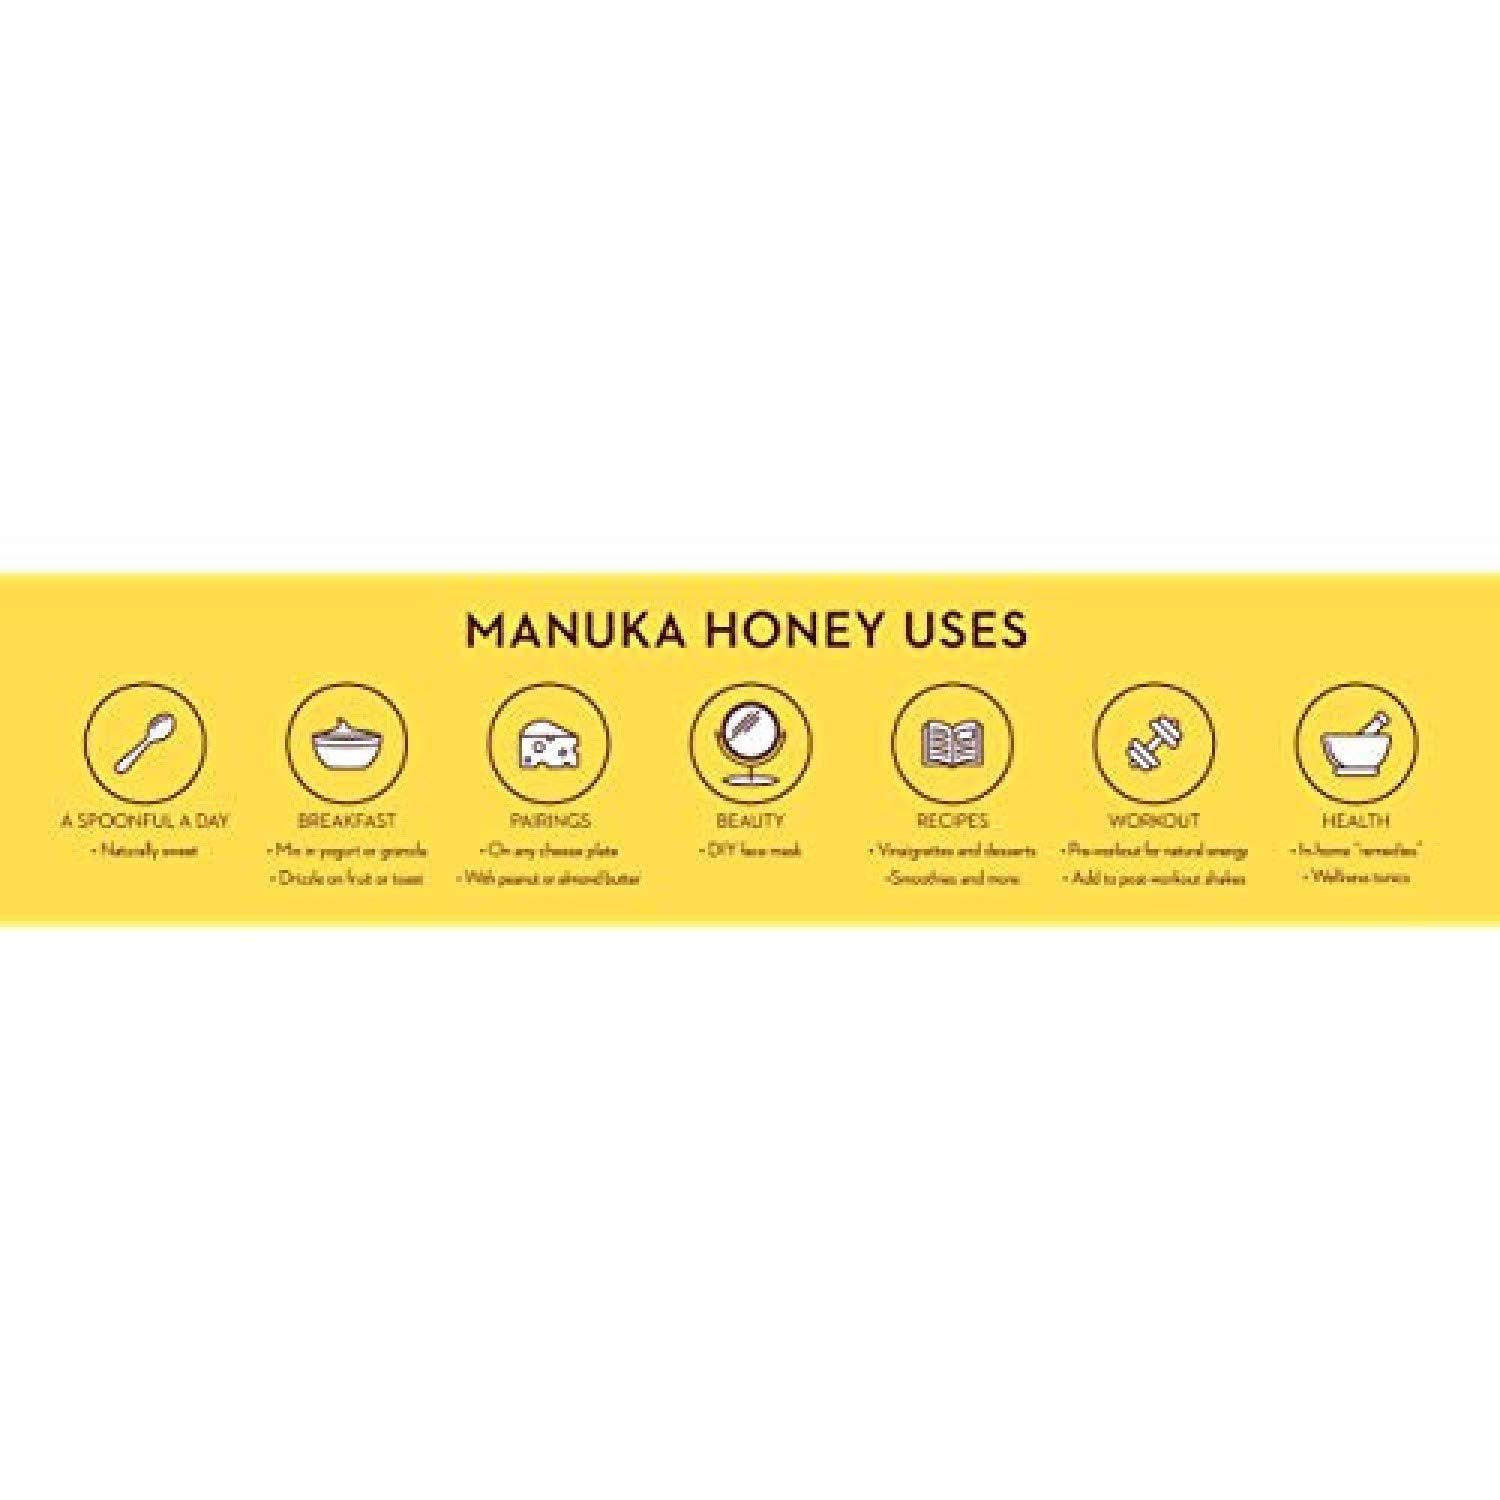 Wedderspoon Raw Premium Manuka Honey KFactor 16, 8.8 Oz, Unpasteurized, Genuine New Zealand Honey, Multi-Functional, Non-GMO Superfood by Wedderspoon (Image #7)